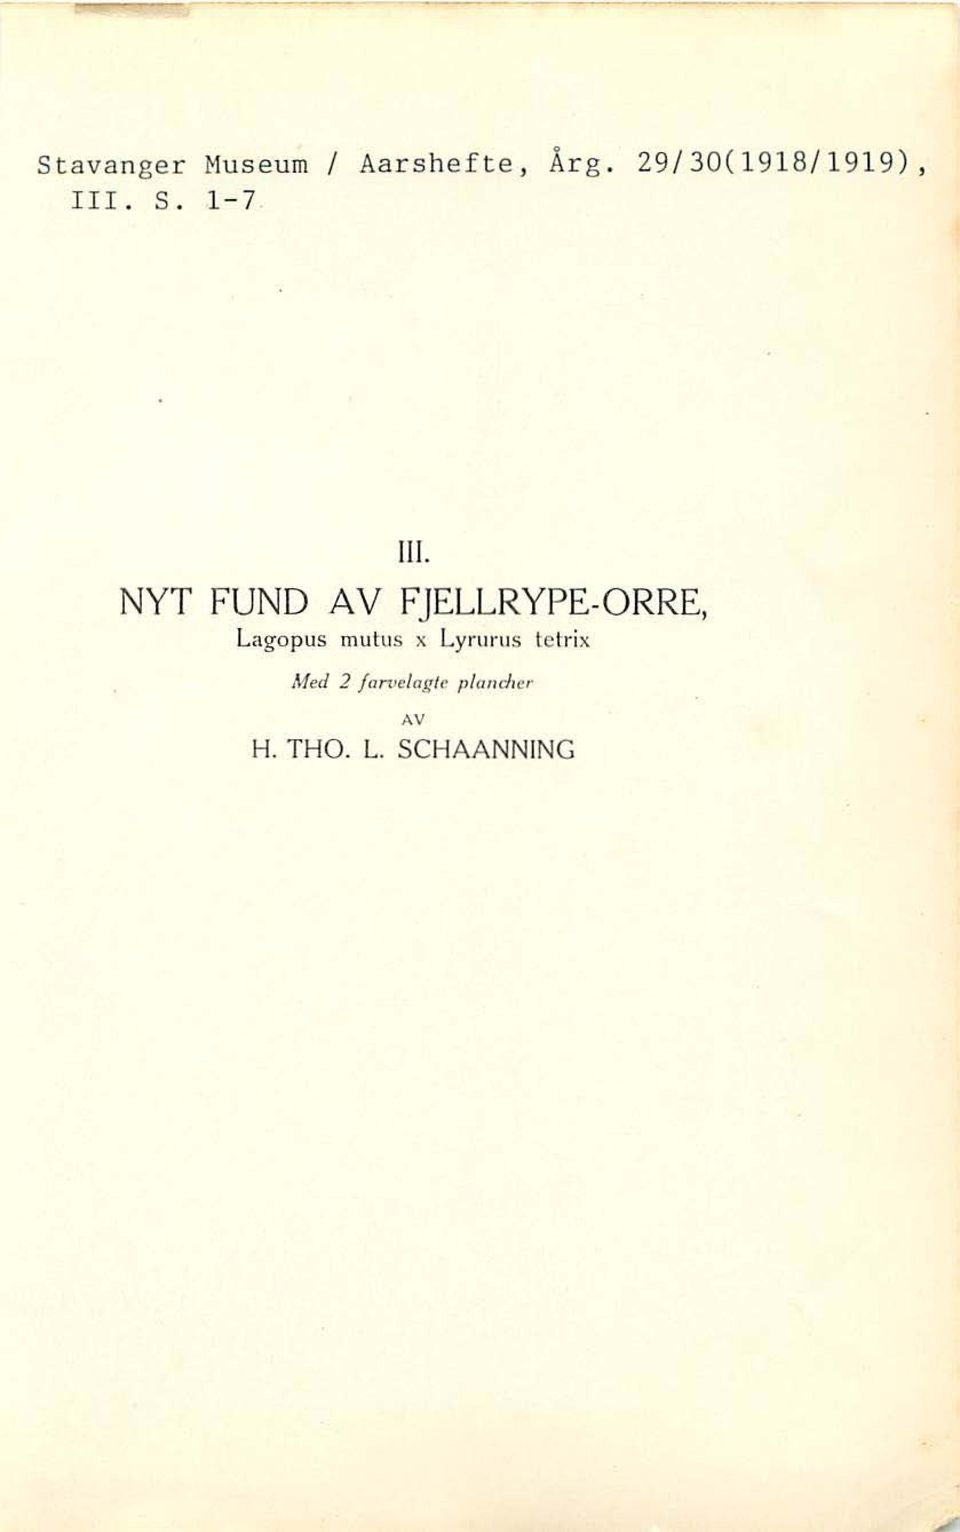 NYT FUND A V FJELLRYPE-ORRE, Lago pus mulus x